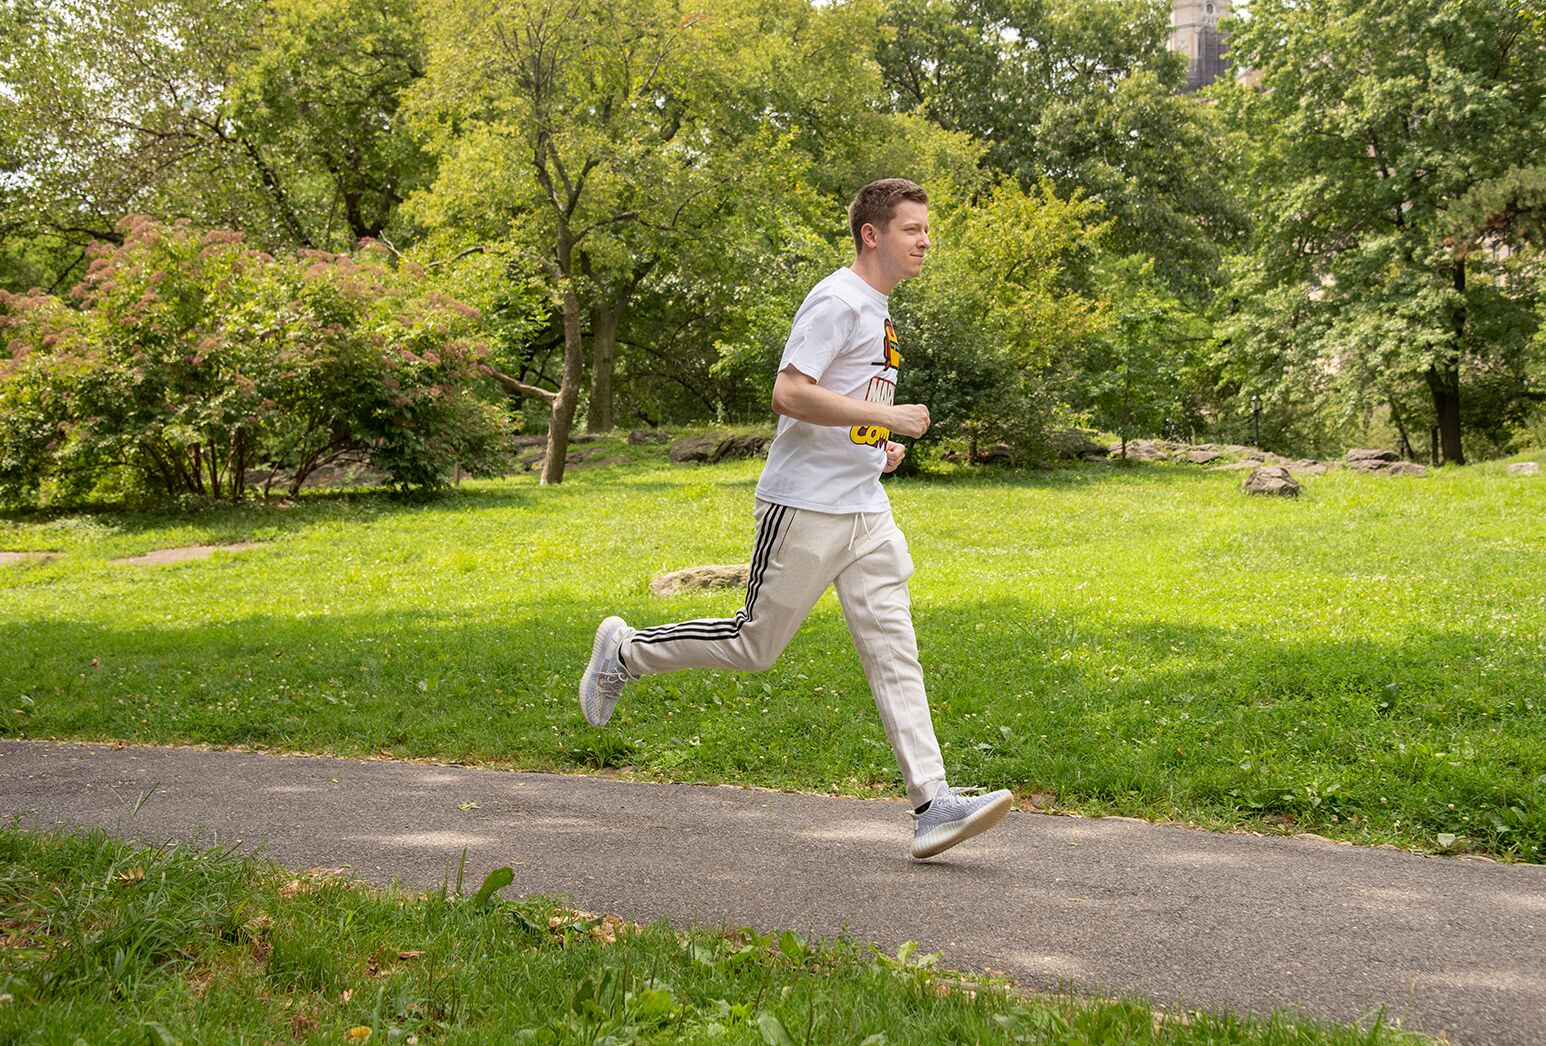 Young man who suffered a stroke at age 21 in white sweatpants and shirt running in Central Park